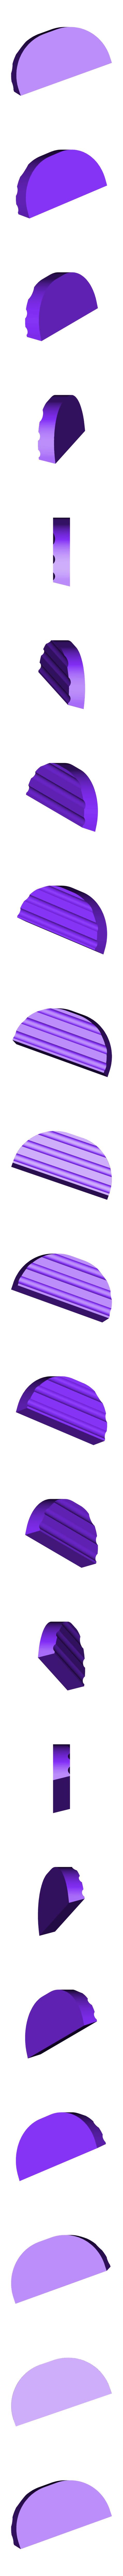 Boot sole back.stl Download free STL file Welbey the Robot • Object to 3D print, Sparrows89